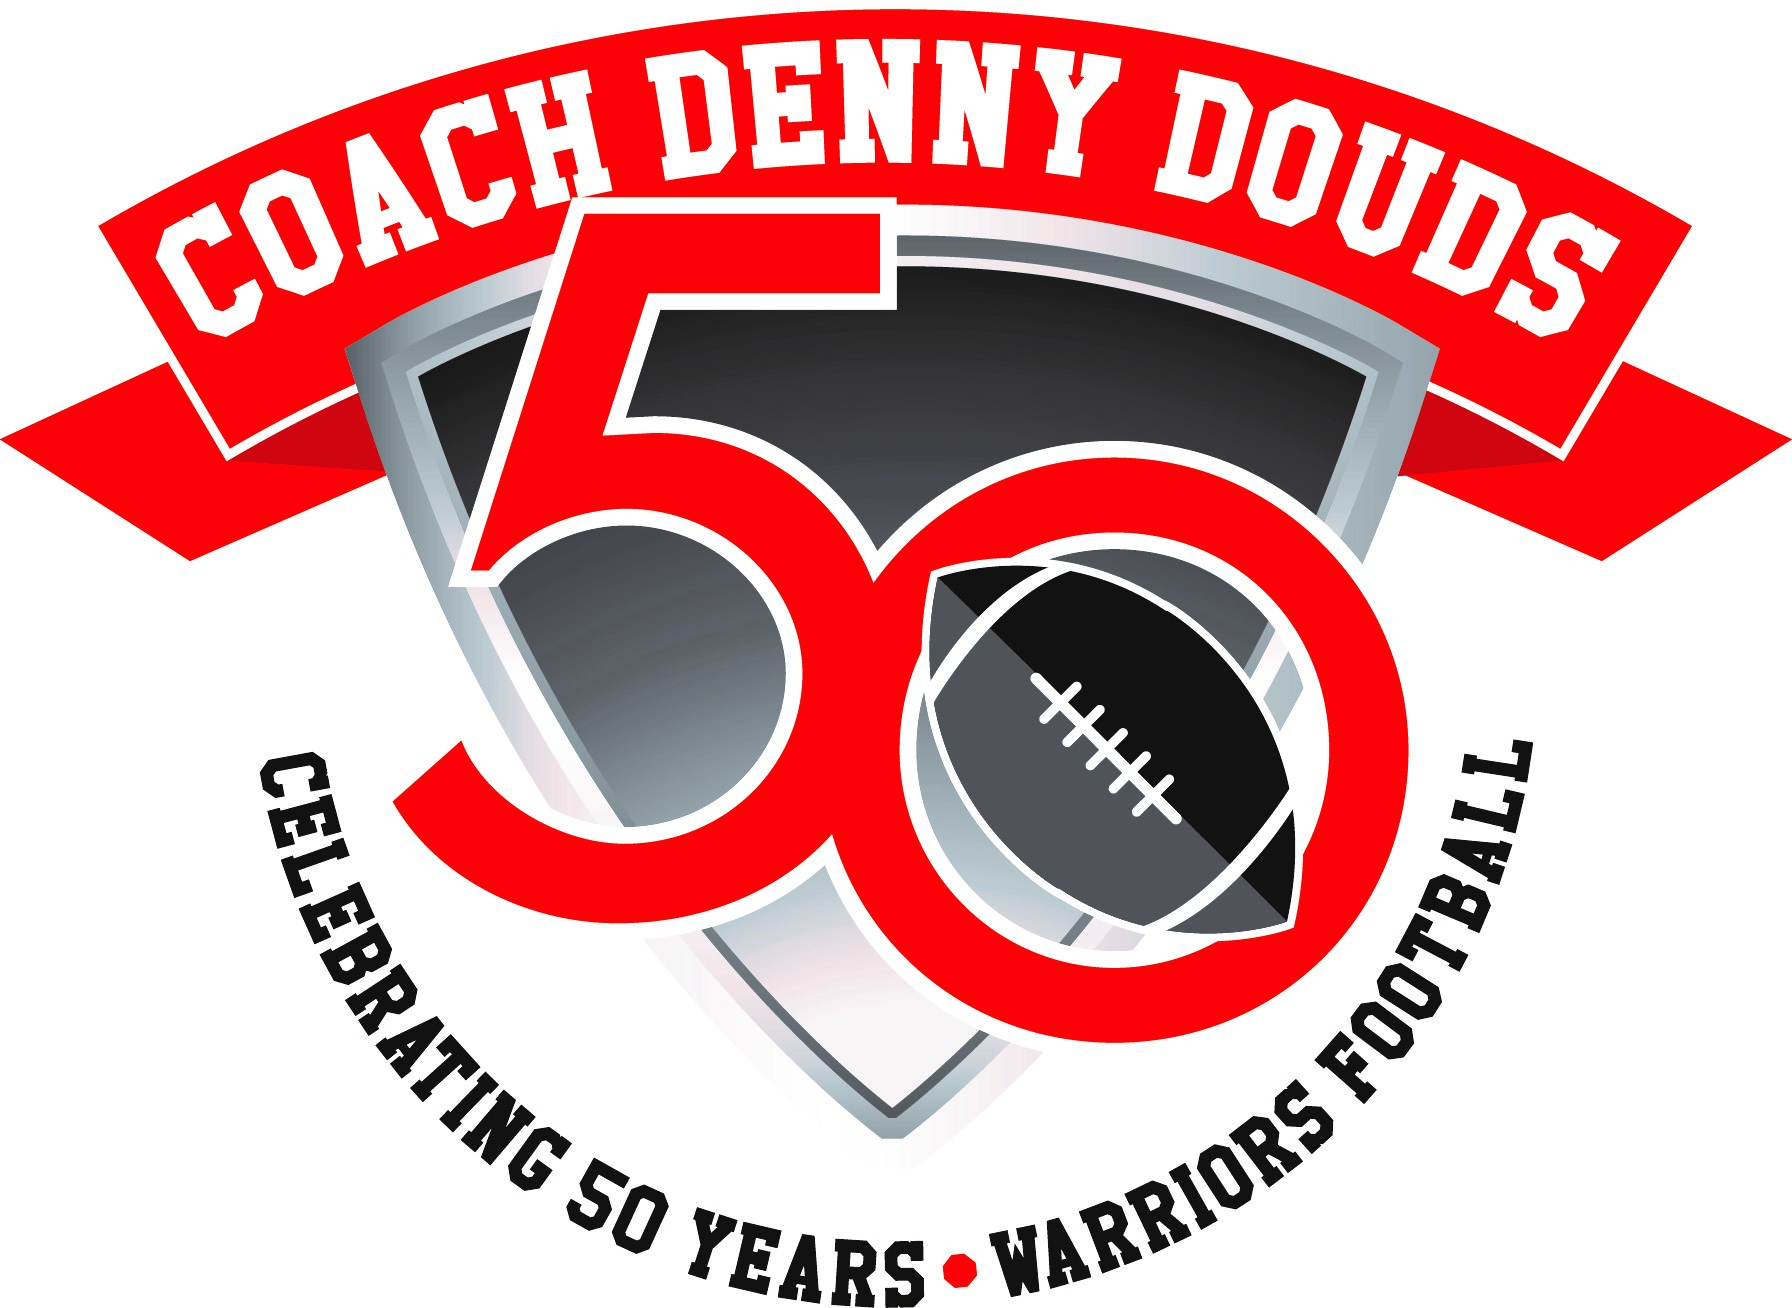 Documentary Video for coach denny douds